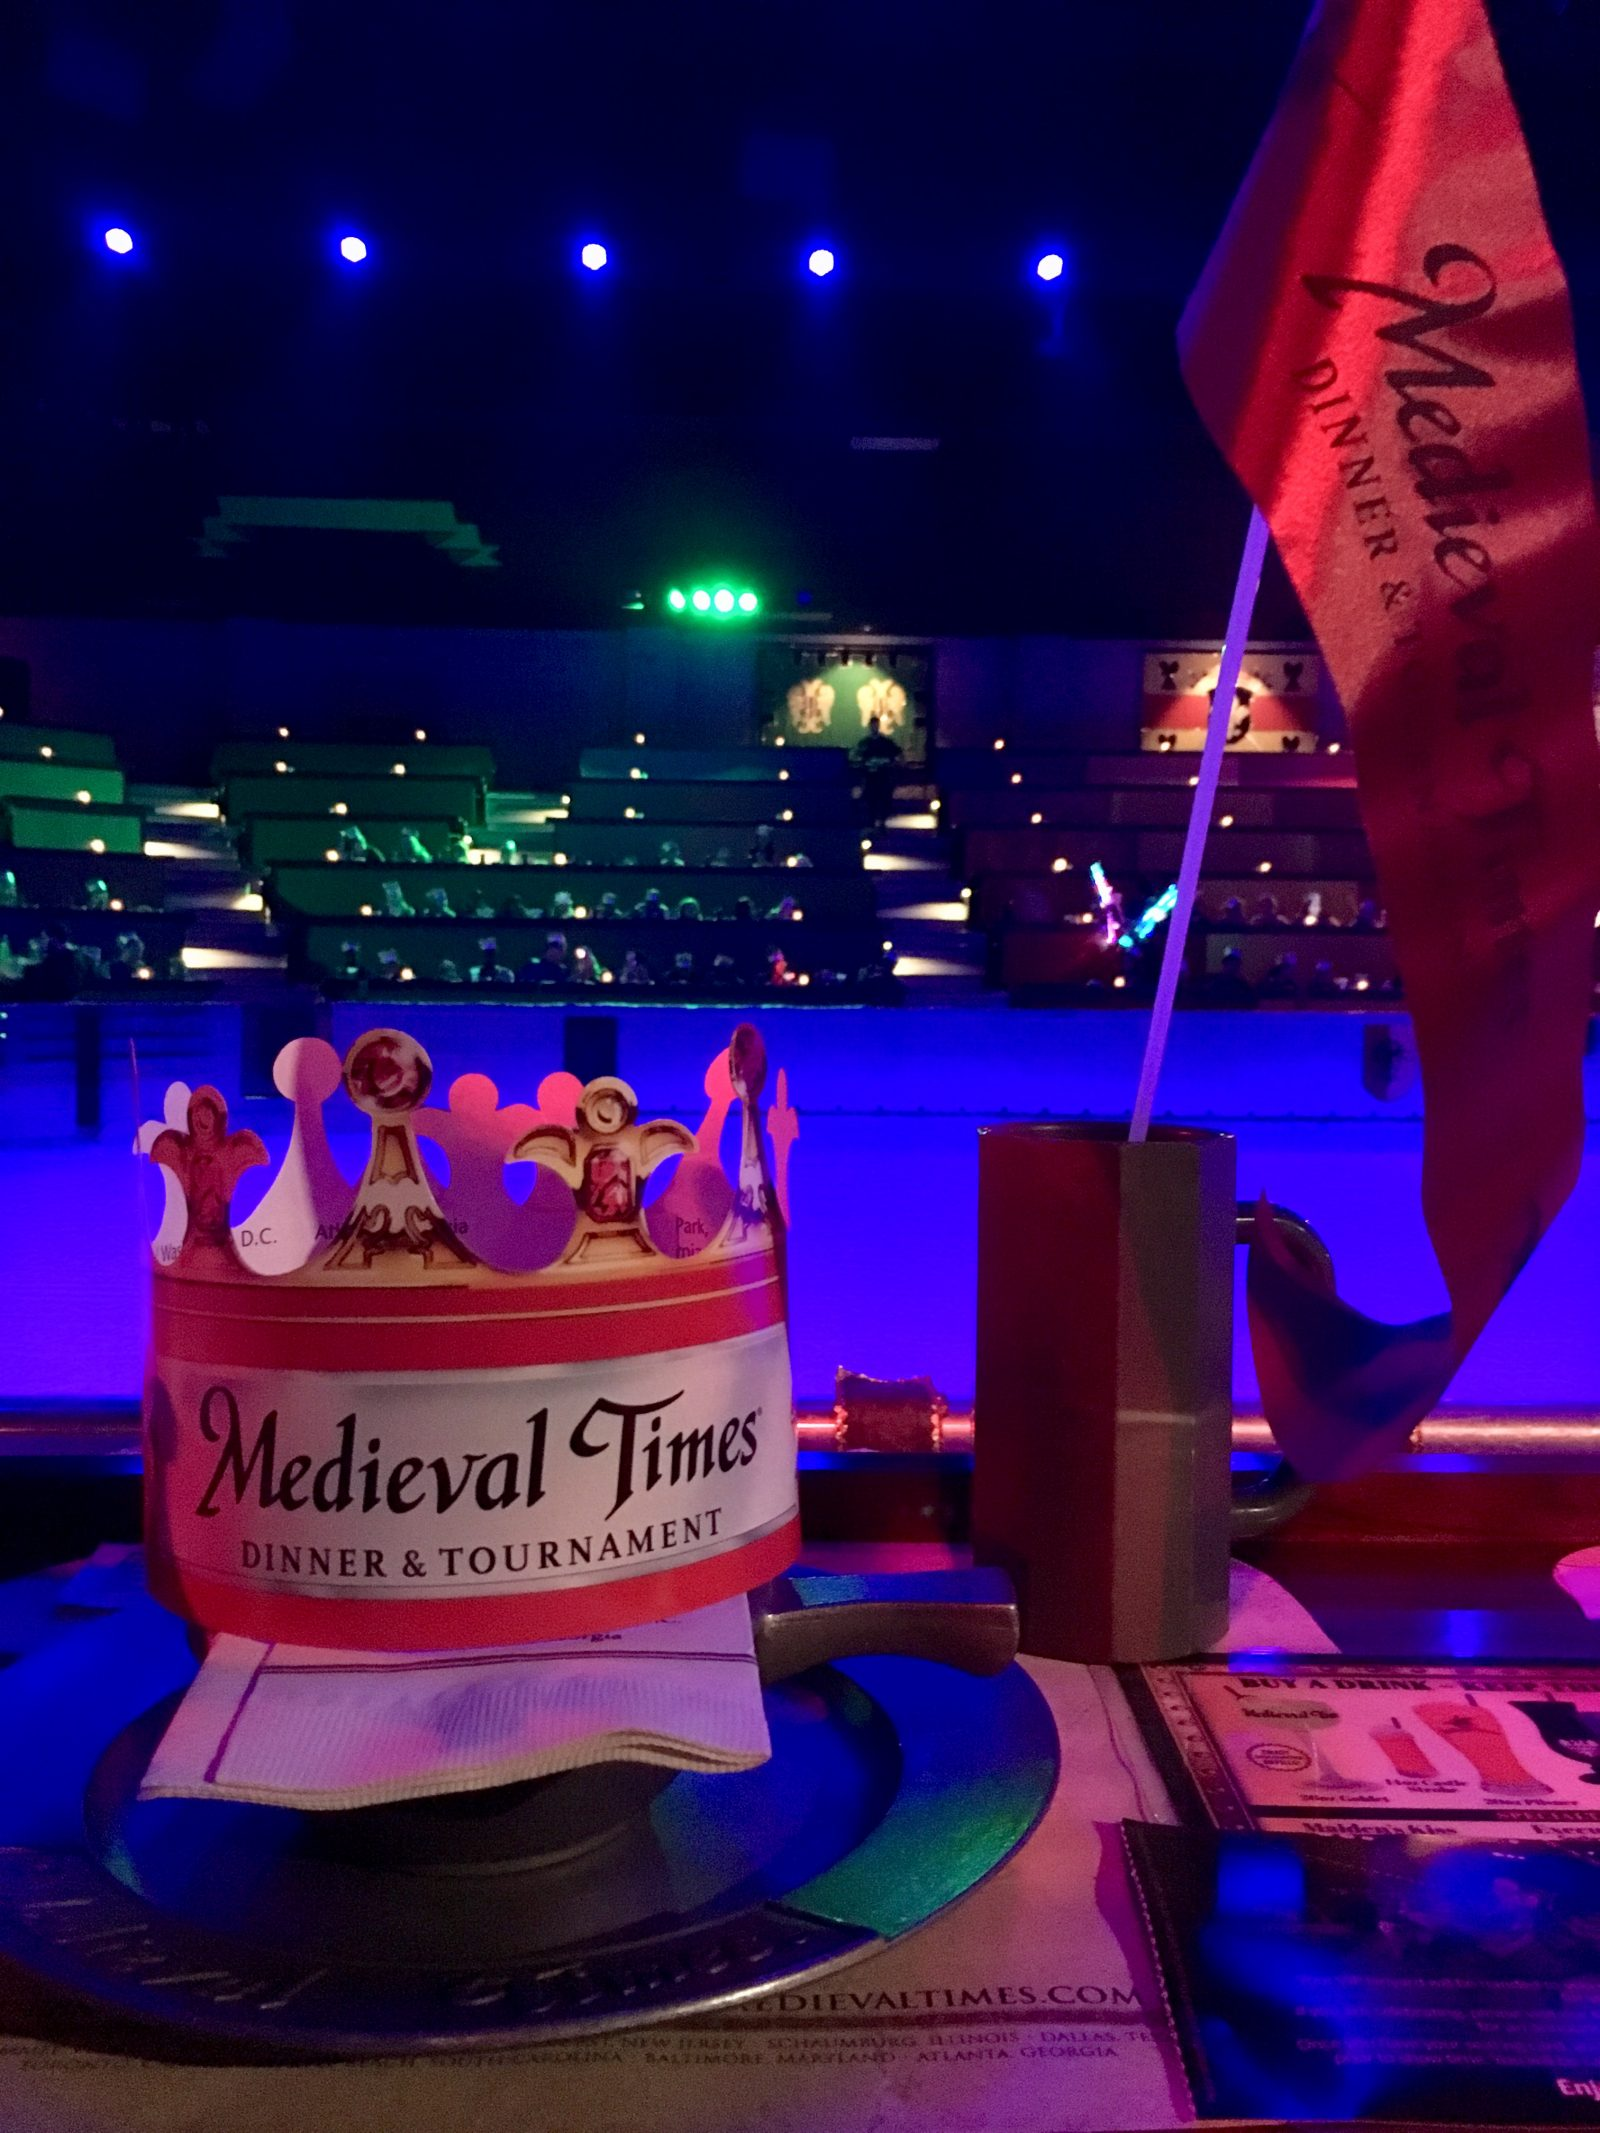 Medieval Times Dinner and Tournament is a must for your family to do together. Comfort food and entertainment, there is definitely something for everyone! Learn more at www.Embellishmints.com